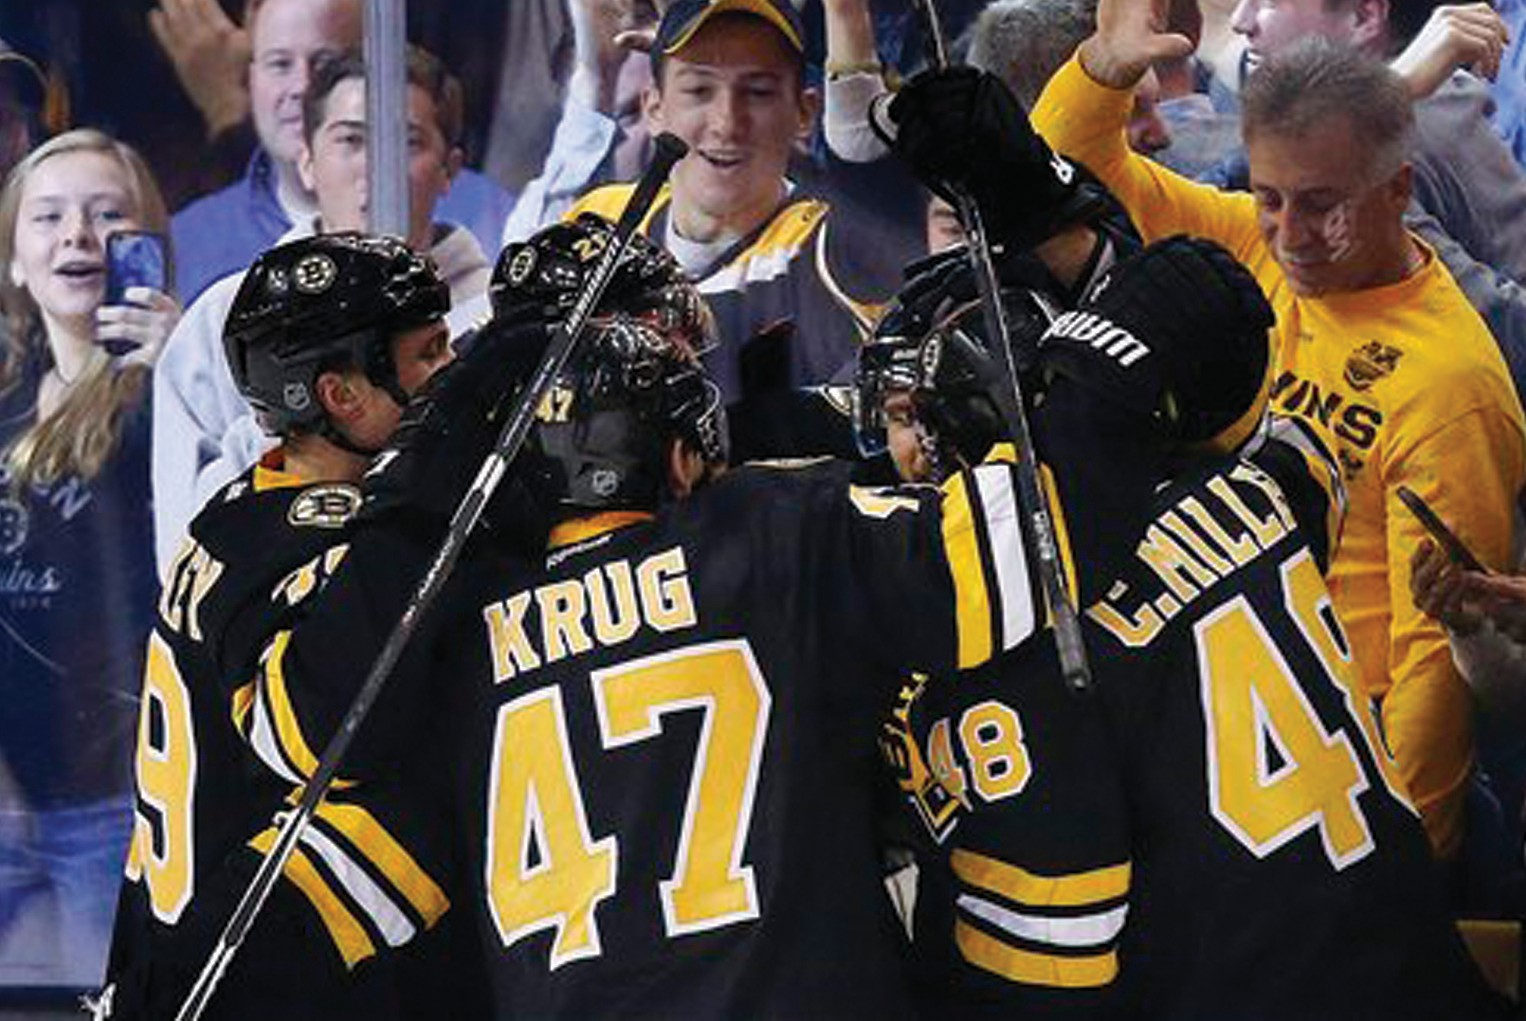 Boston Bruins' Torey Krug (47) Colin Miller (48) and teammates celebrate a go-ahead goal by David Krejci, back right, during the third period against the New York Rangers in Boston on Friday.